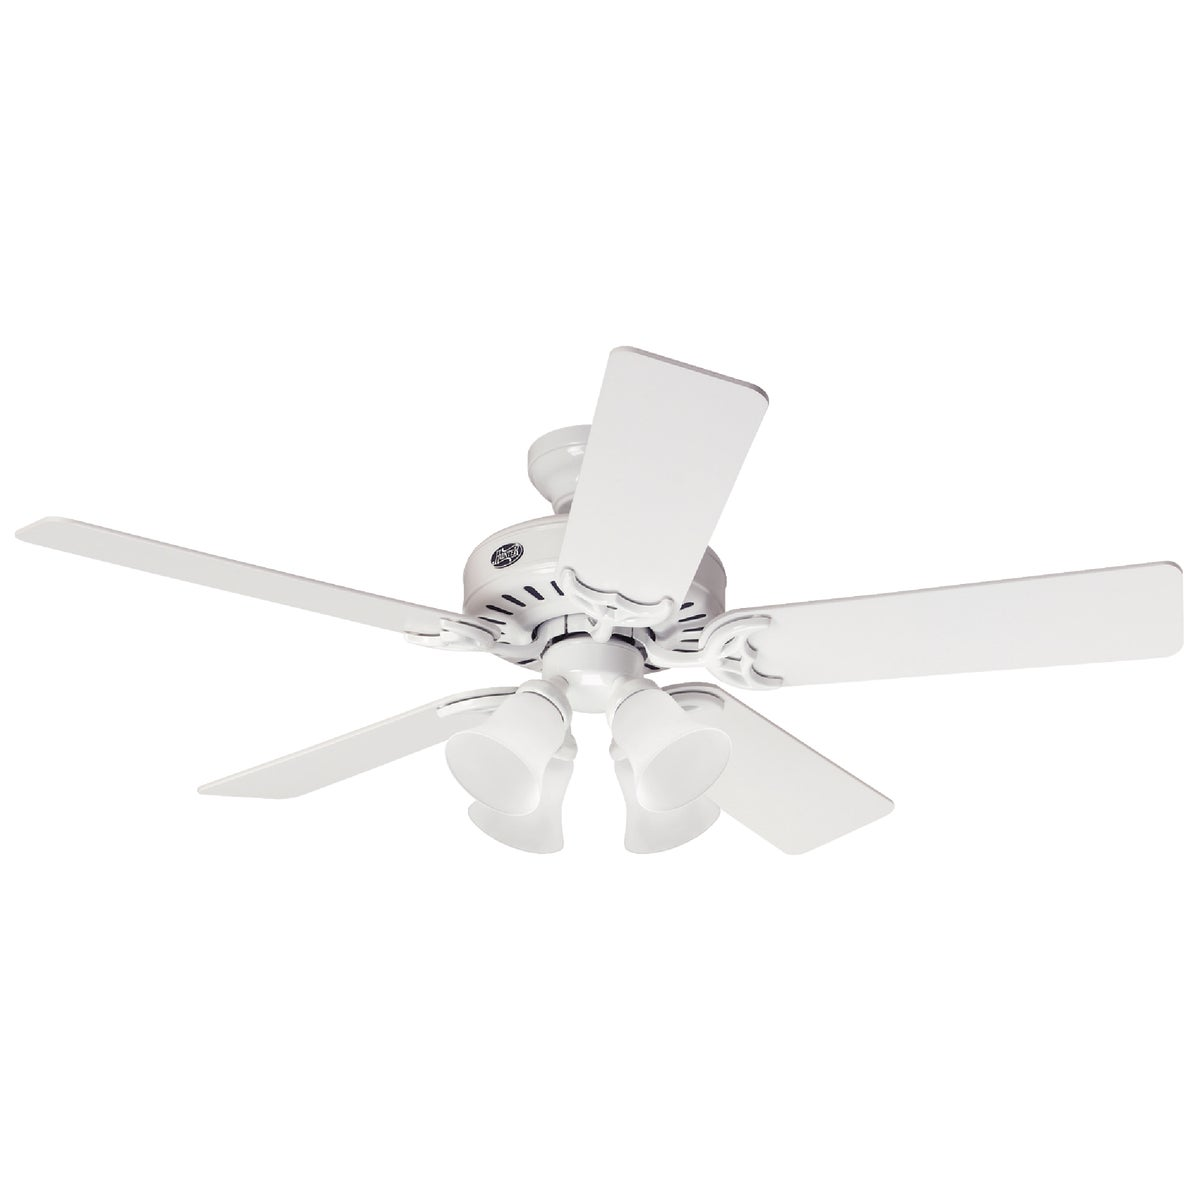 "52"" WHT CEIL FAN W/LIGHT - 53062 by Hunter Fan Co"